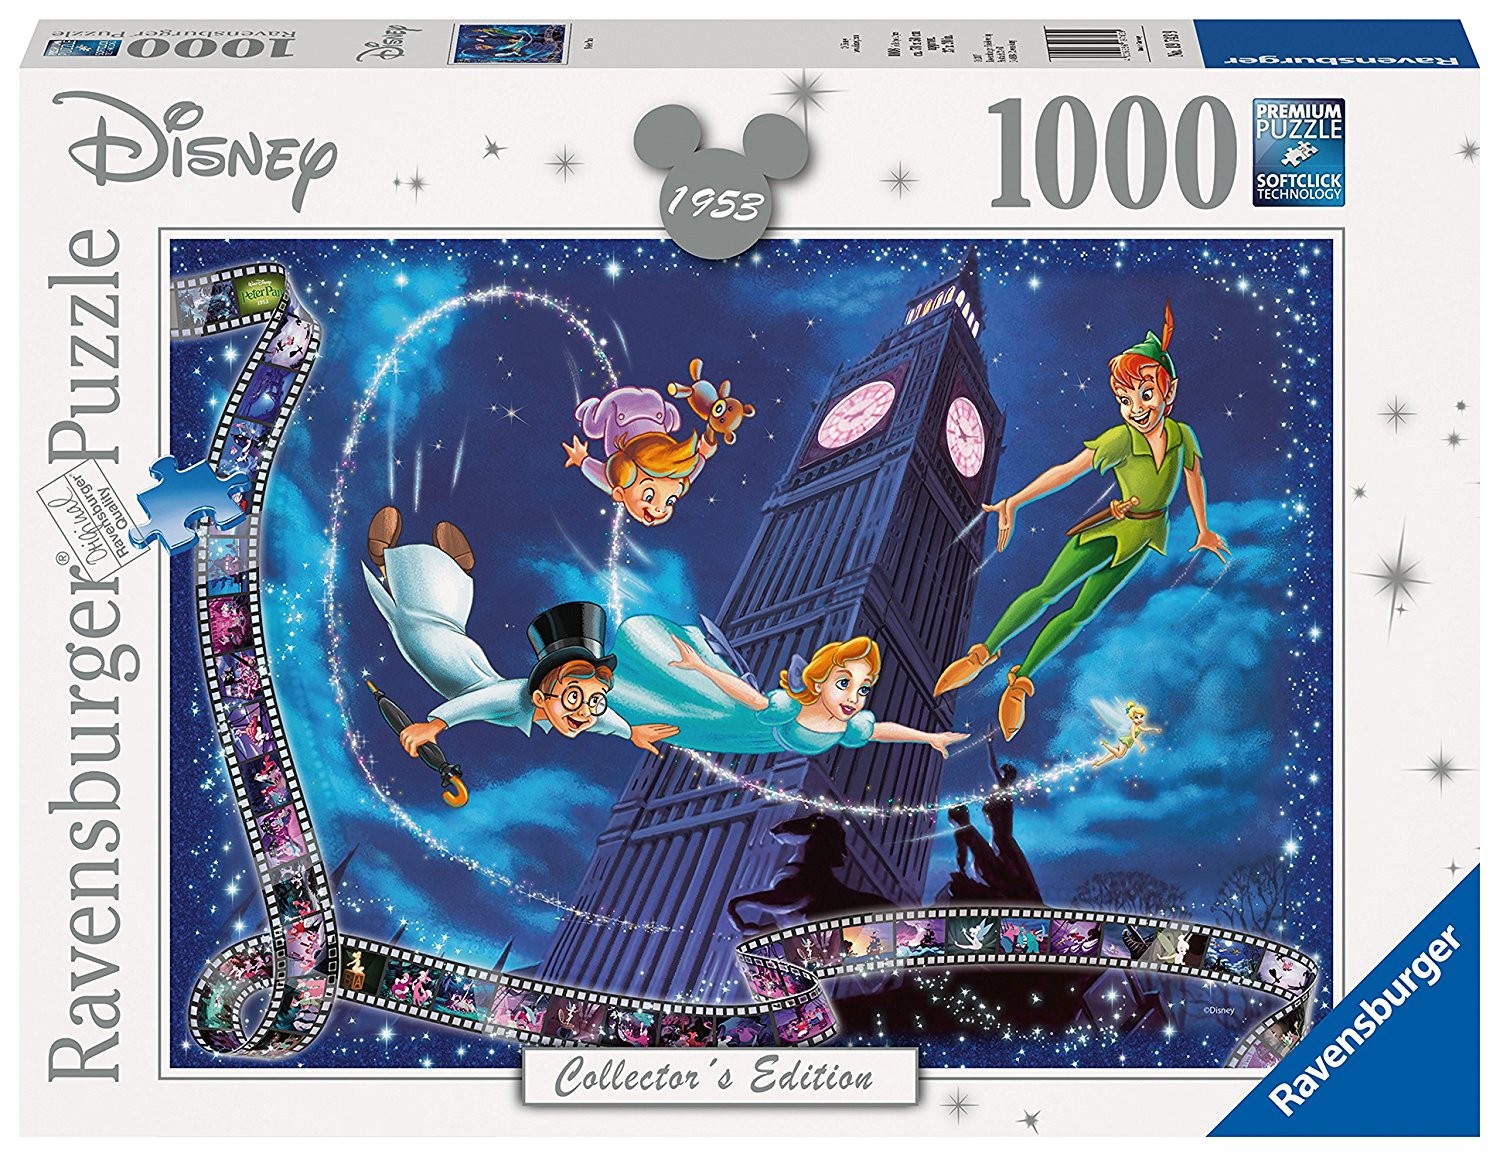 Peter Pan Disney Collector's Edition, 1000pc